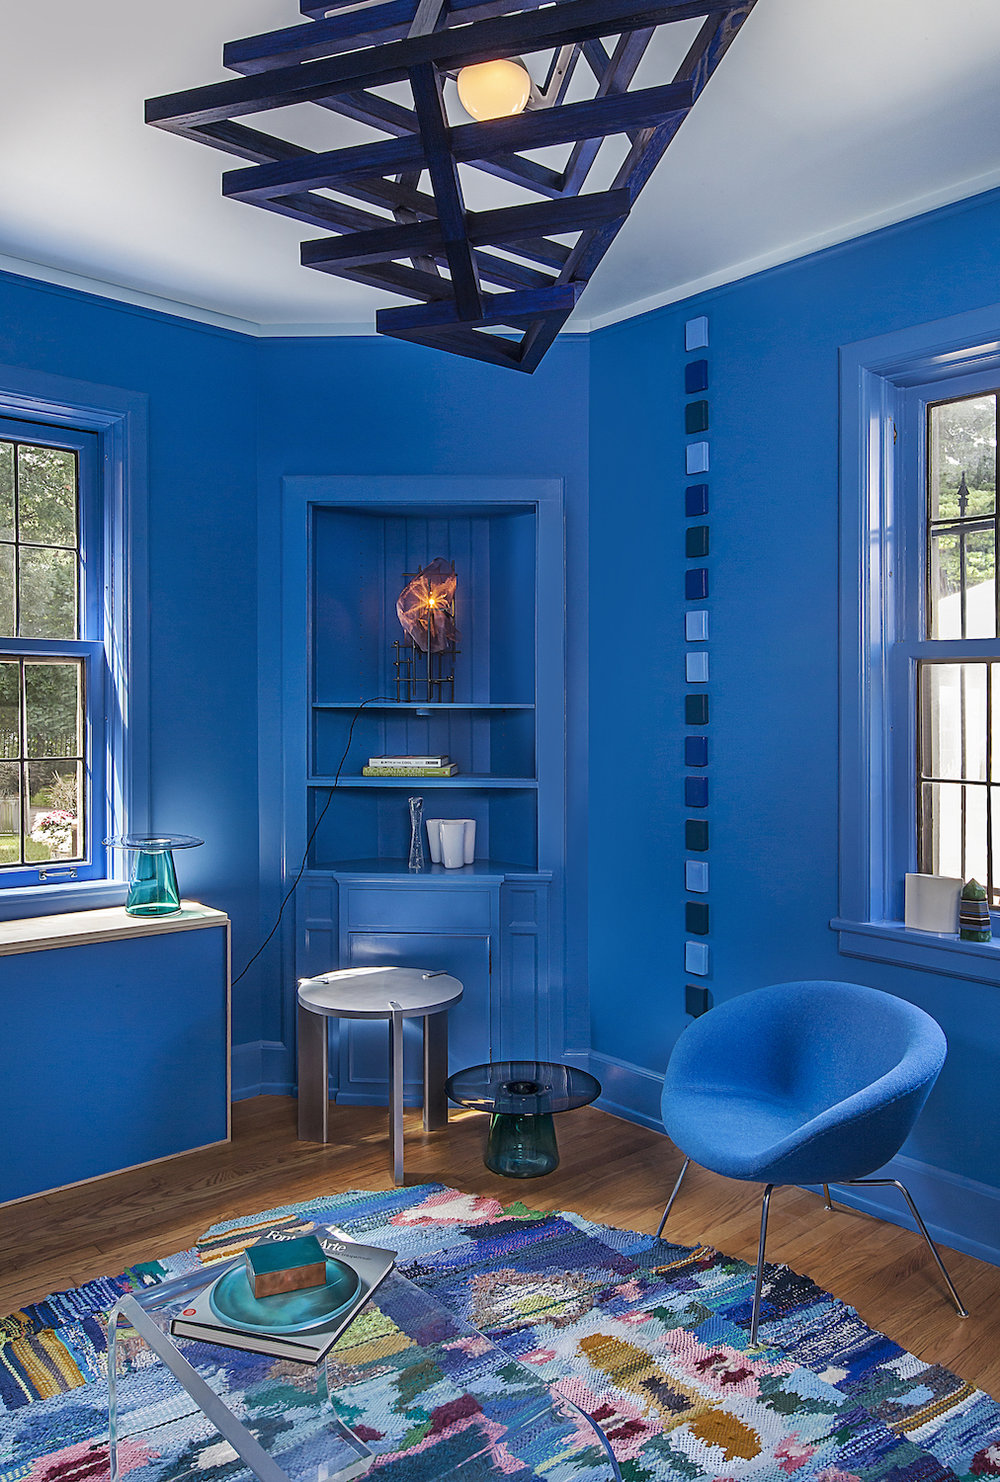 The Blue Room. Featuring Contemporary Detroit design from Next Space